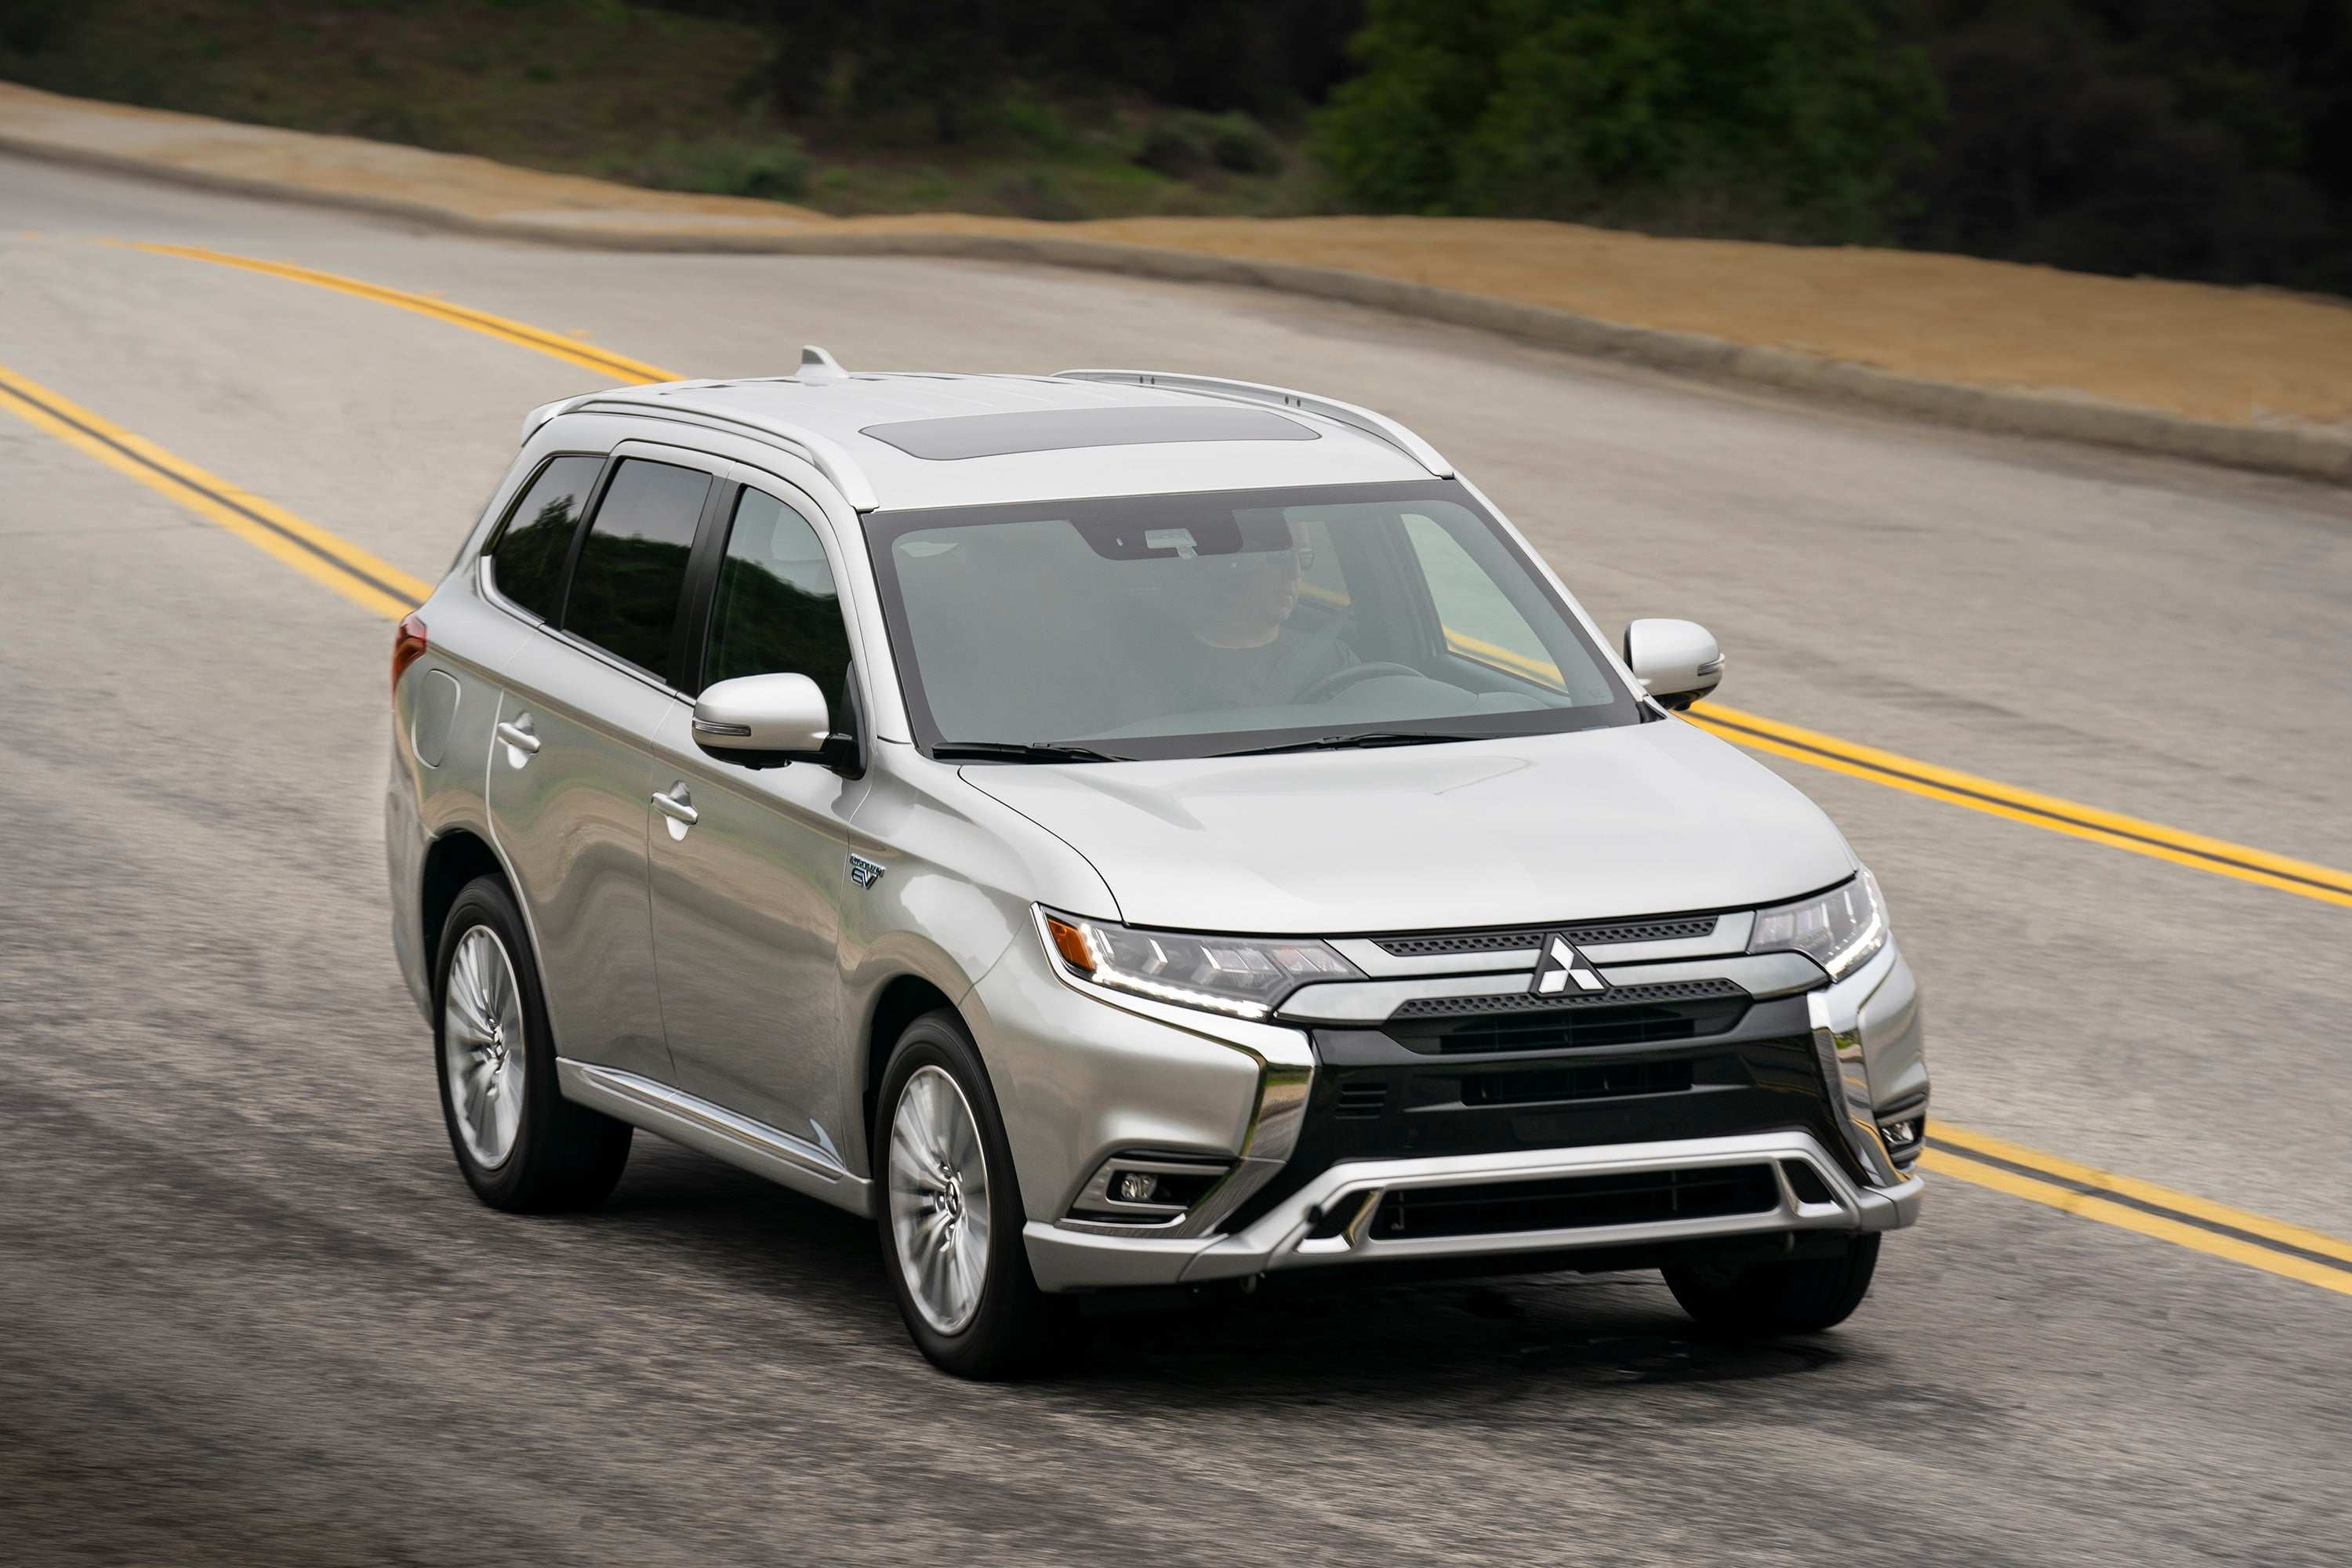 21 All New 2019 Mitsubishi Outlander Phev Review Spy Shoot